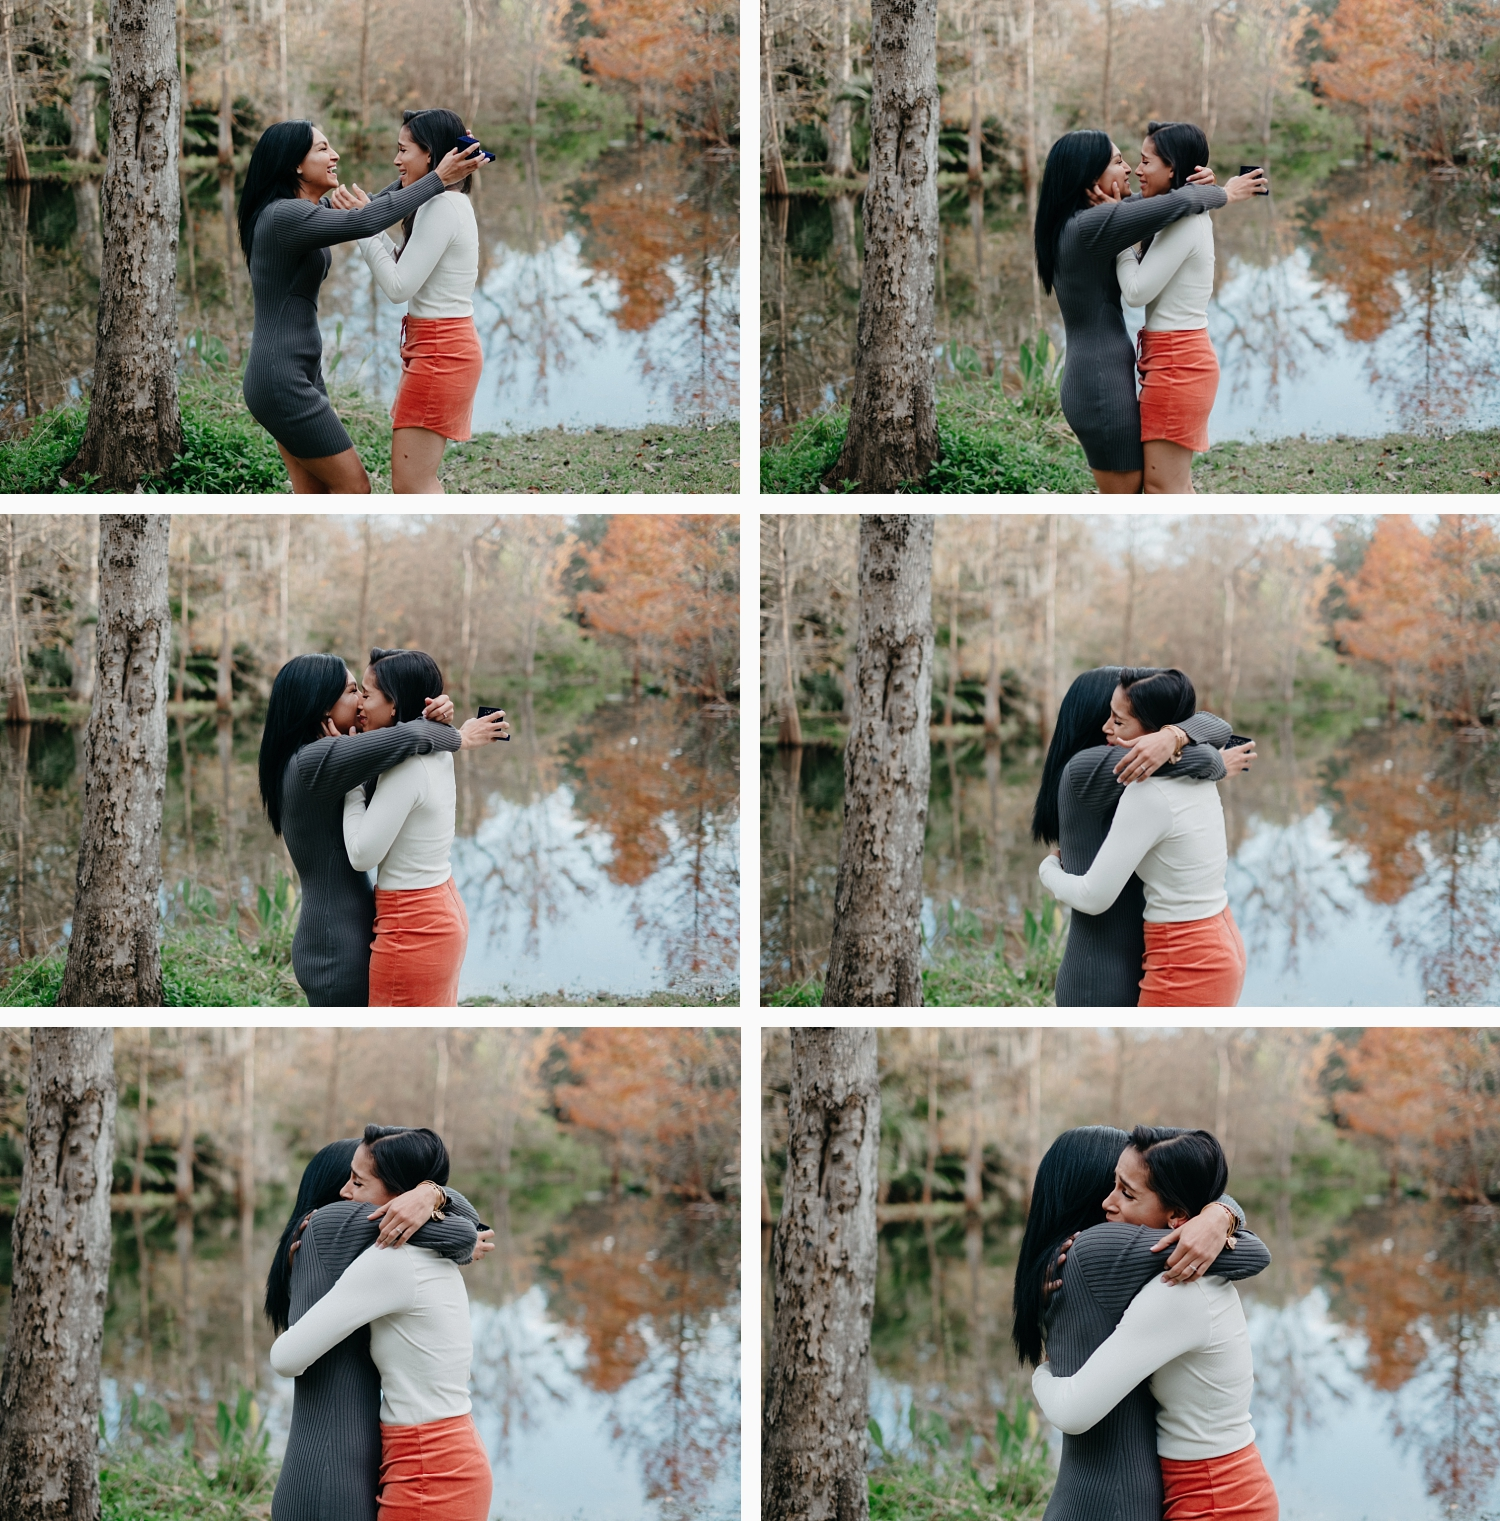 Rubie-And-Stefany-Orlando-Surprise-Proposal-_0037.jpg